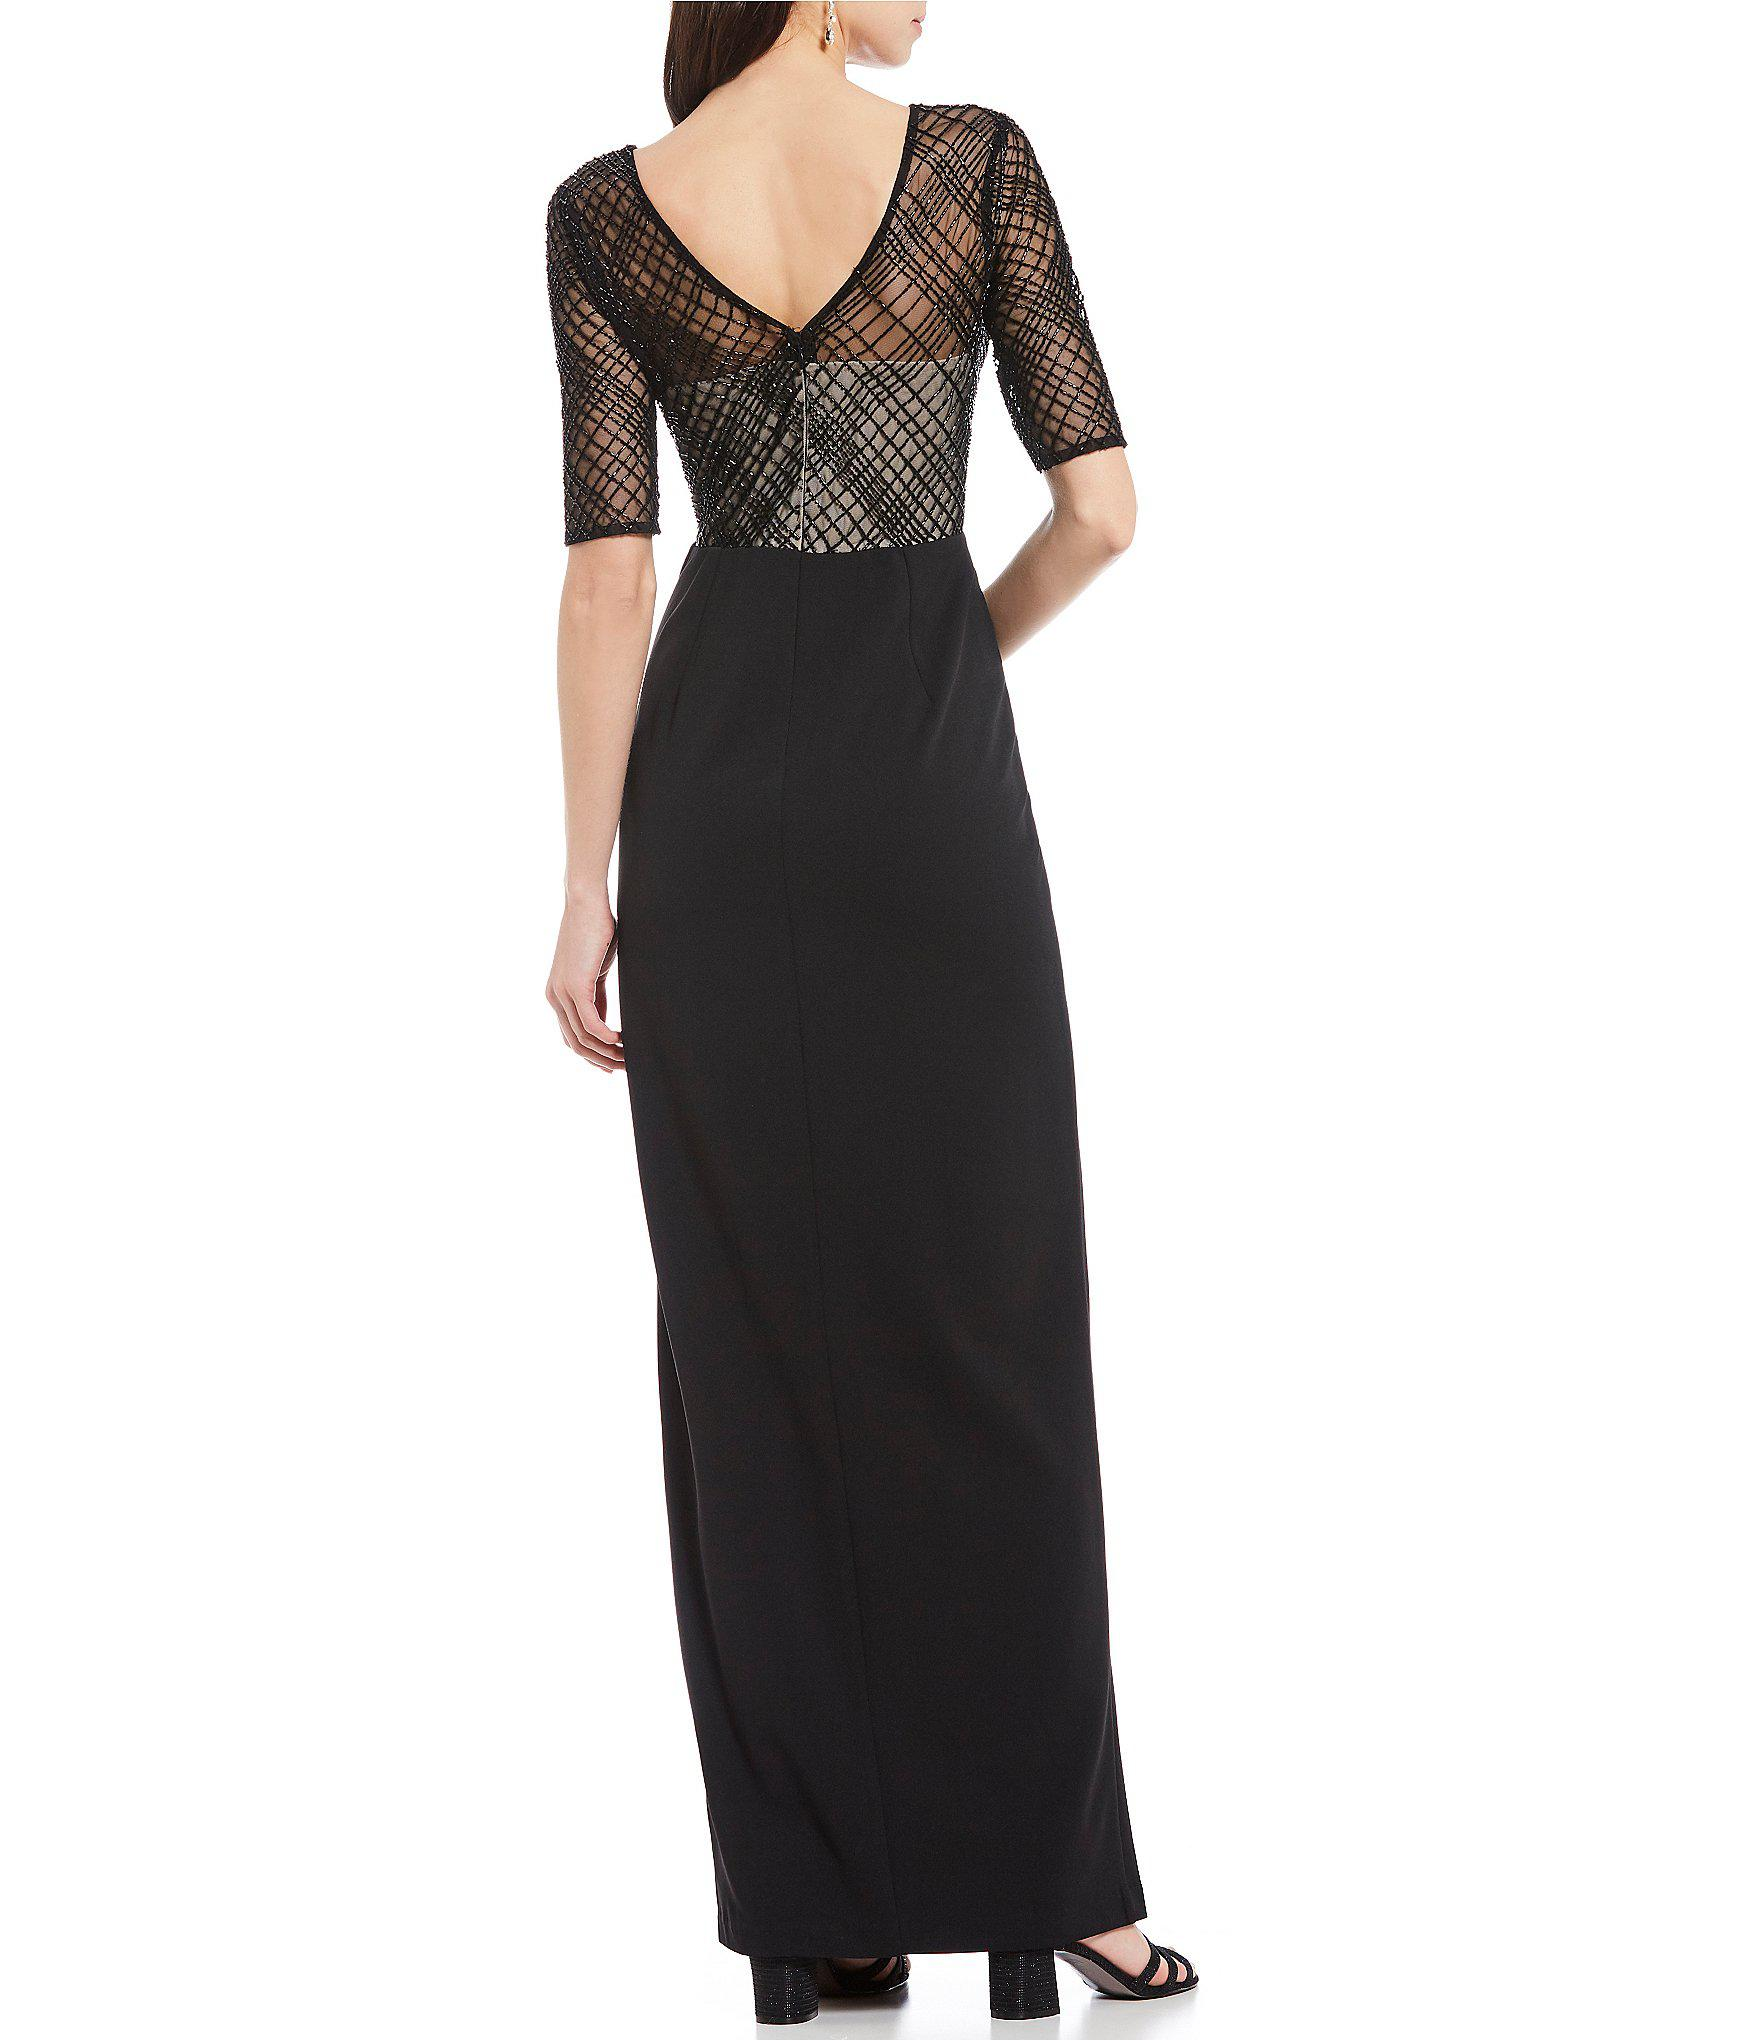 d7a26aad97f Adrianna Papell - Black Illusion Beaded Bodice Ruffle Slit Front Crepe Gown  - Lyst. View fullscreen